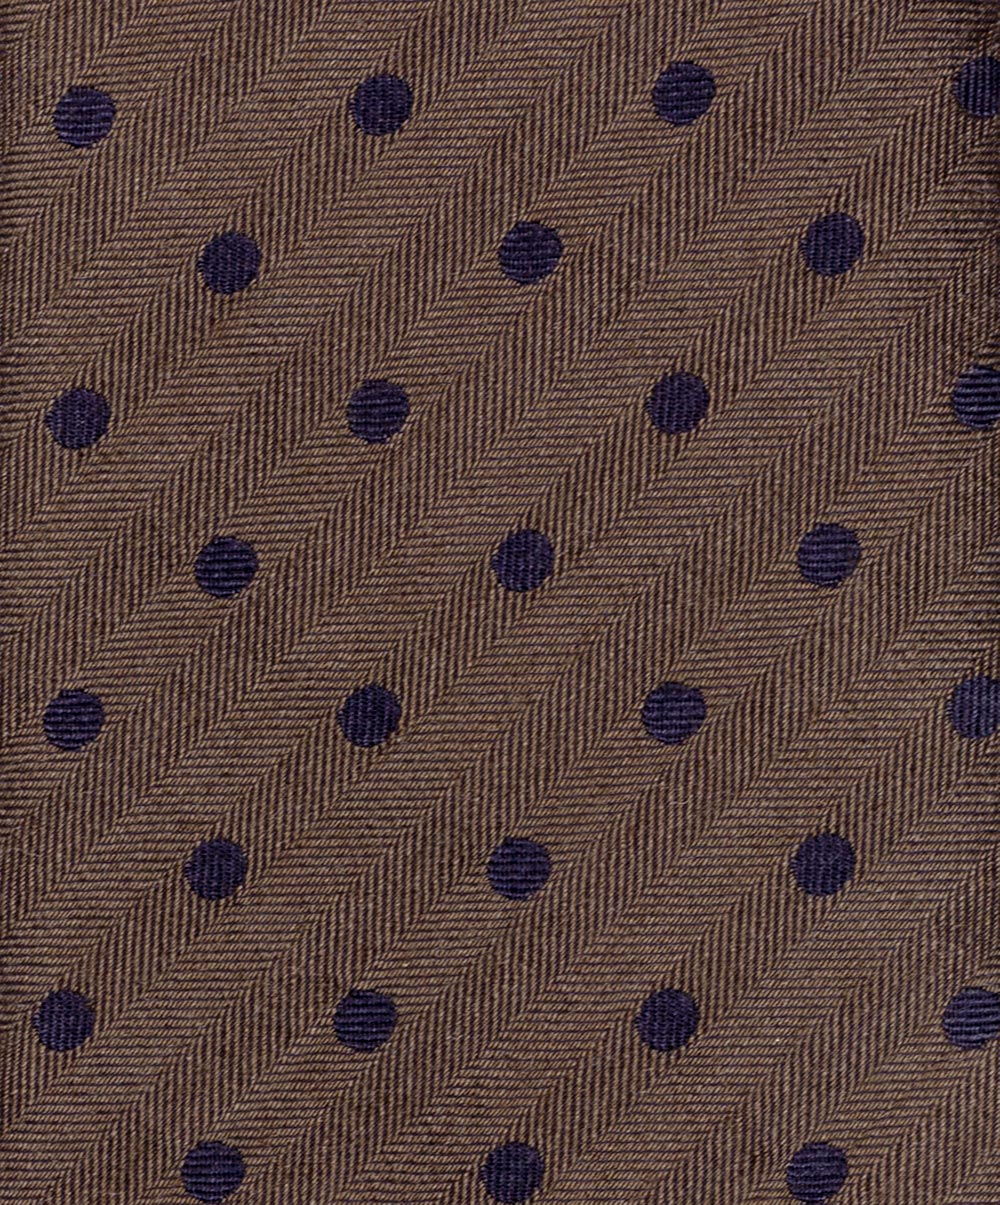 8.0cm Chocolate/Black Clean Polka Dot on Herringbone Wool/Silk Tie